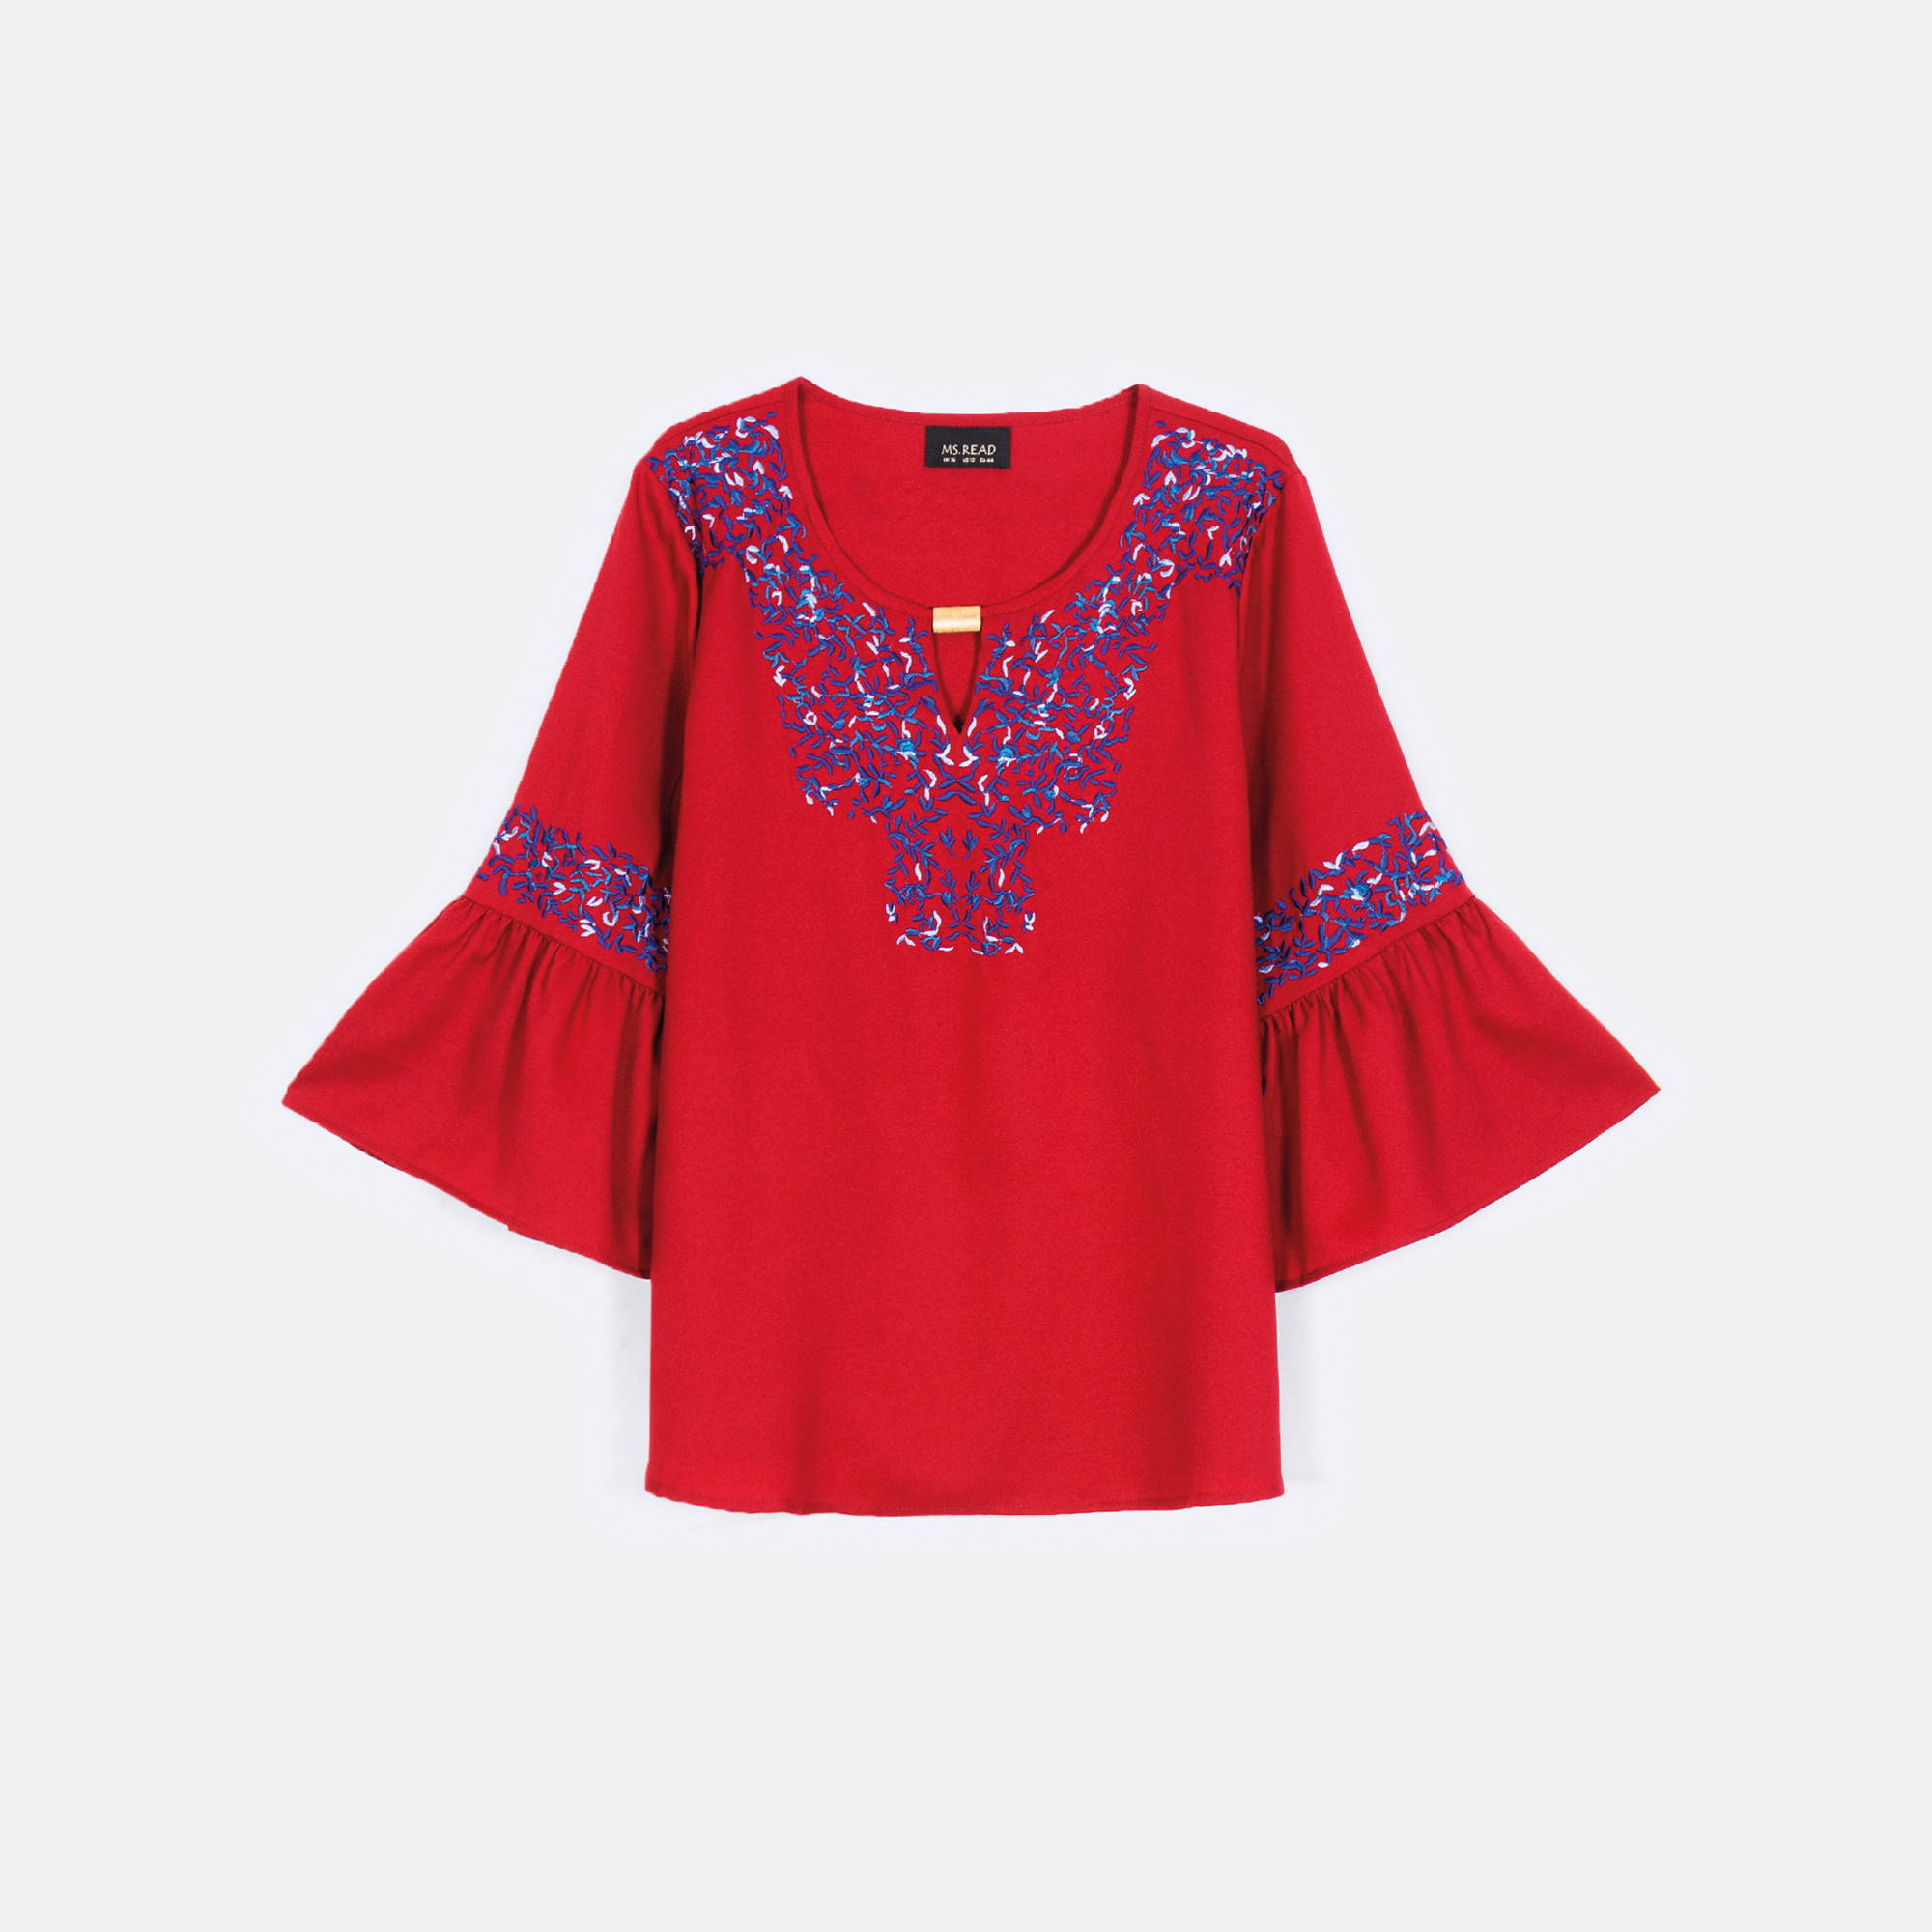 MS. READ Embroidered Top